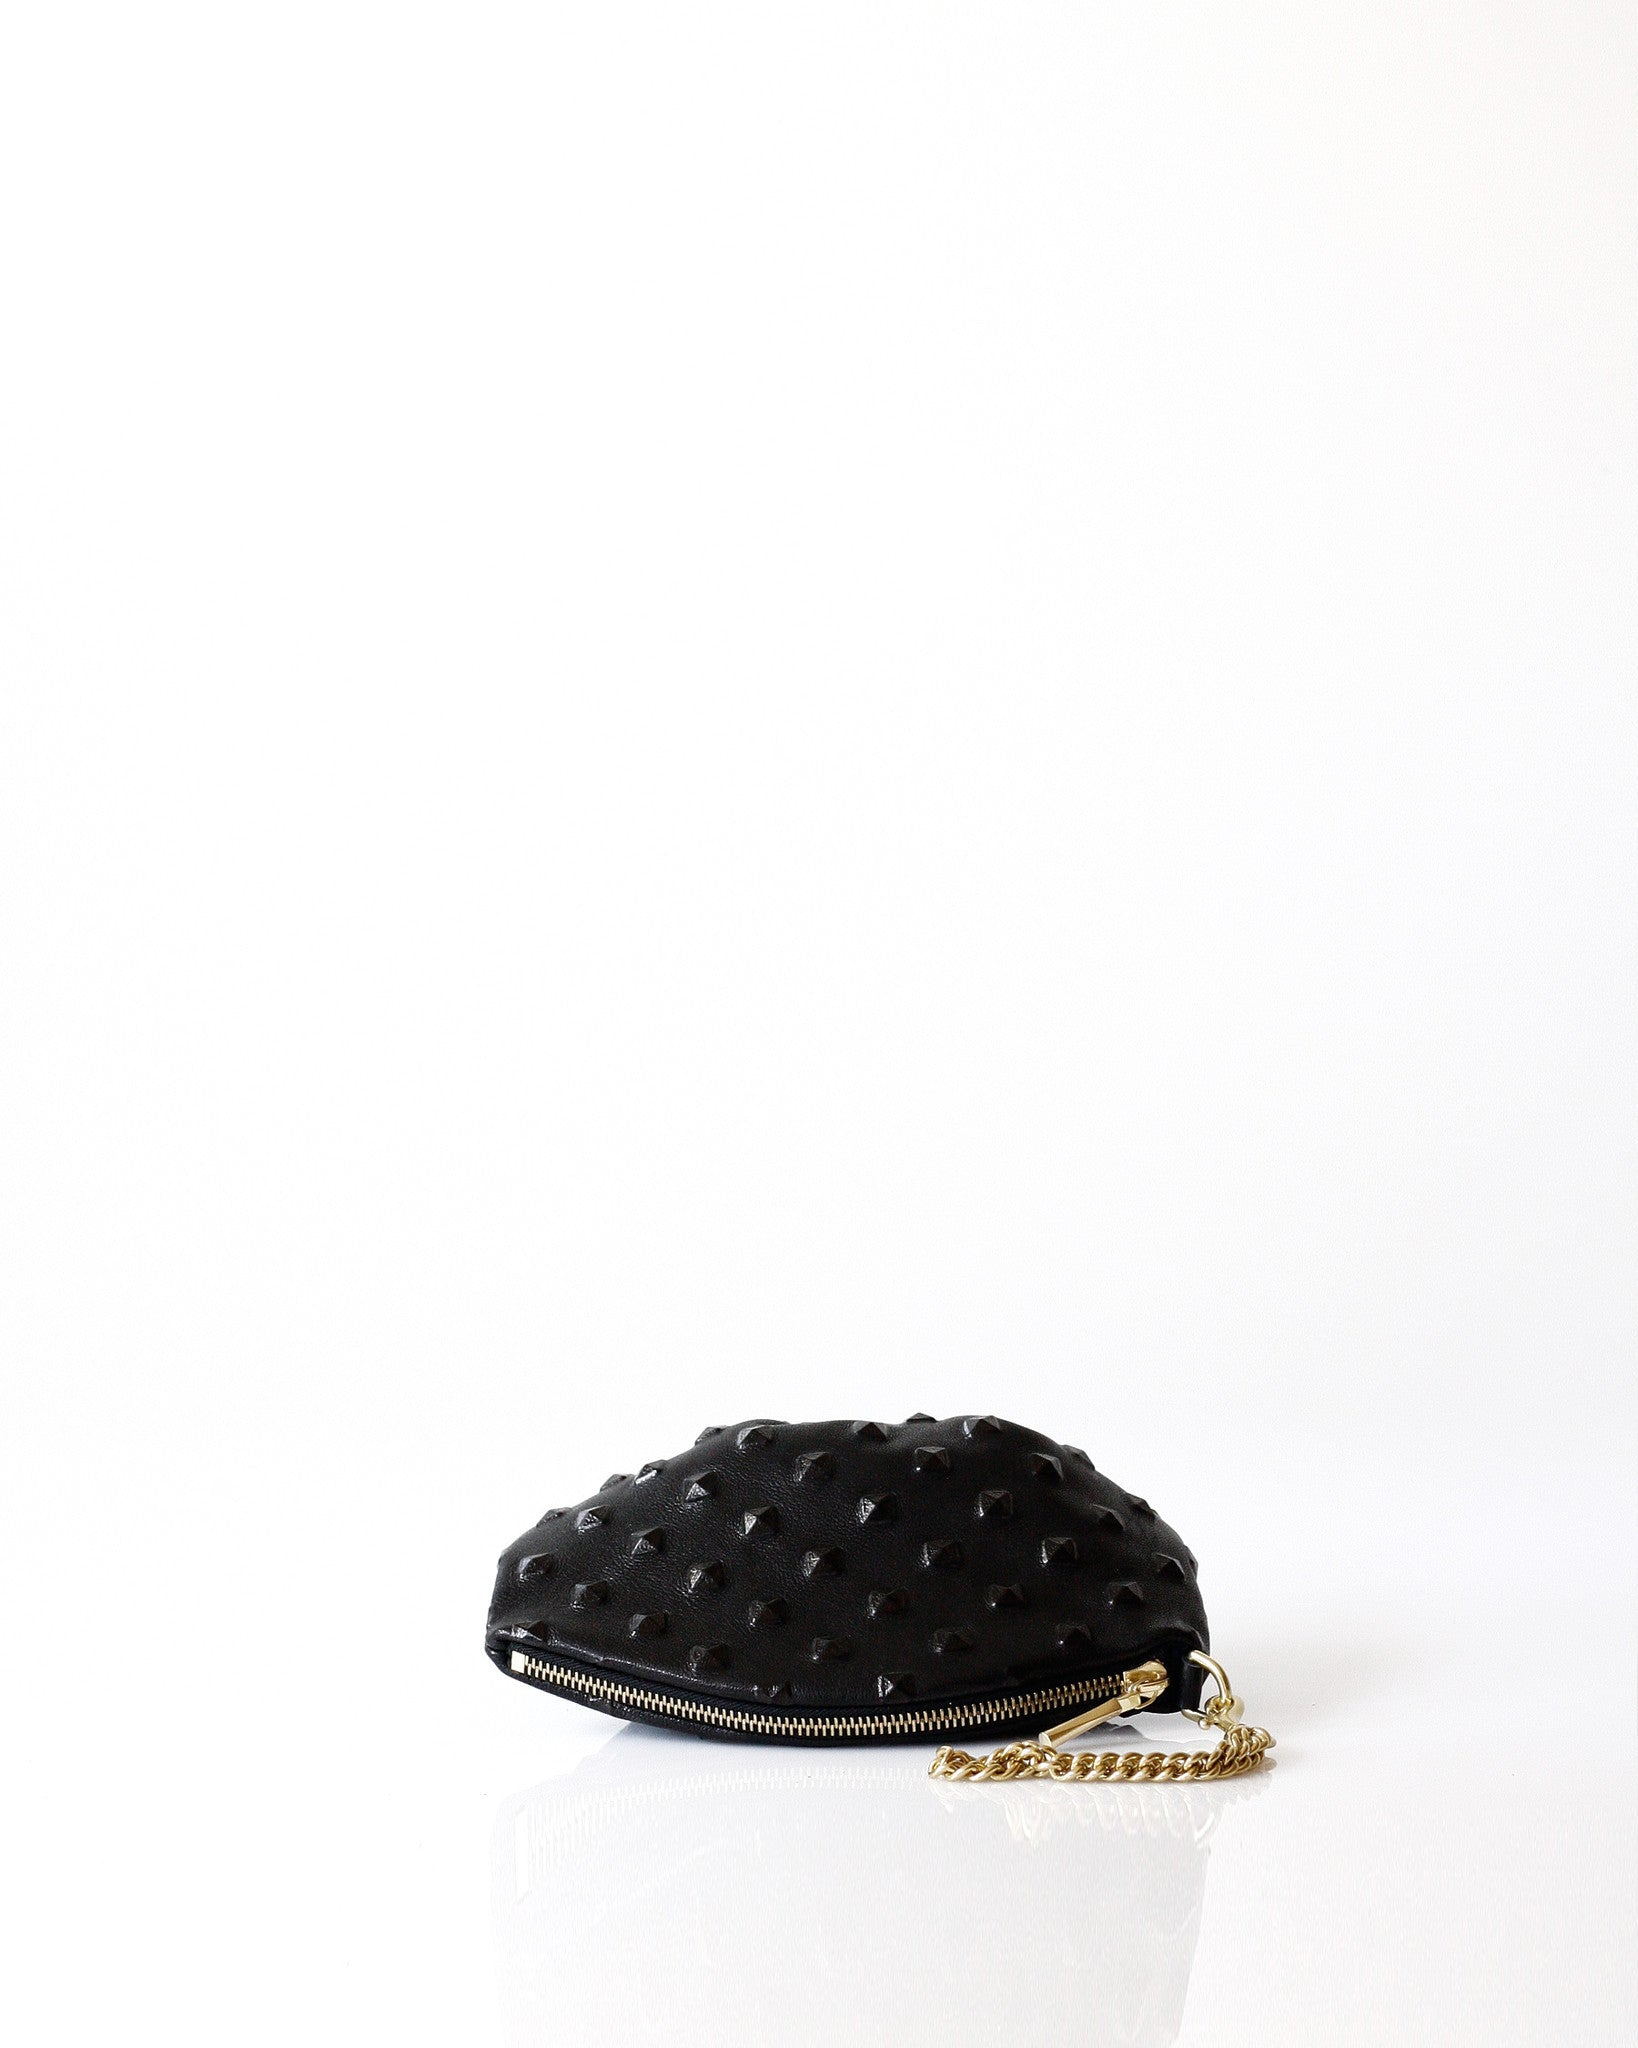 m Pochette | BLK Studded - OPELLE bag opelle handbag opellecreative